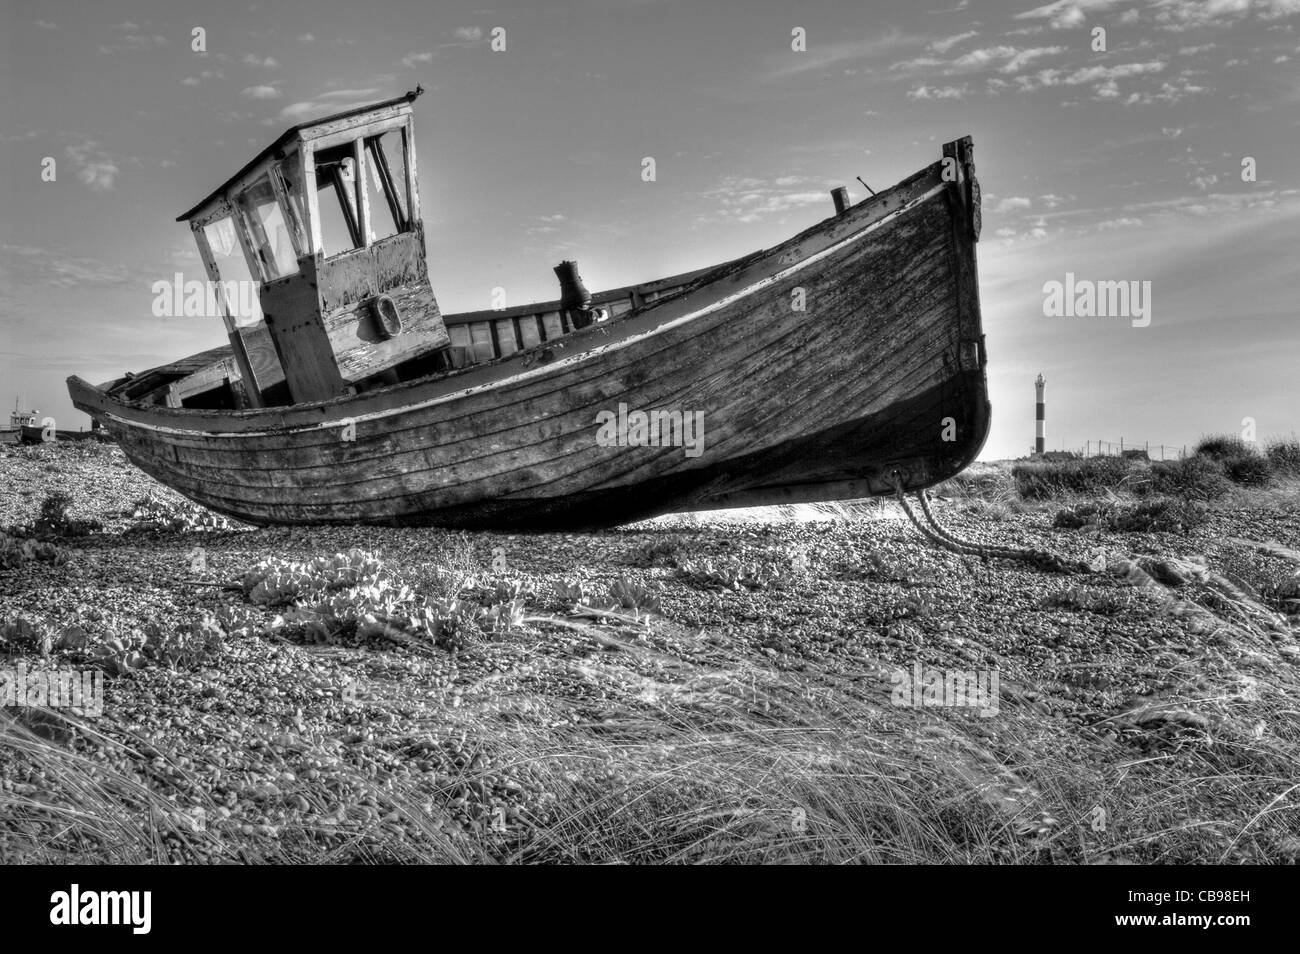 An old abandoned fishing boat on the beach at Dungeness, Kent, UK. The Dungeness lighthouse is in the background. Stock Photo